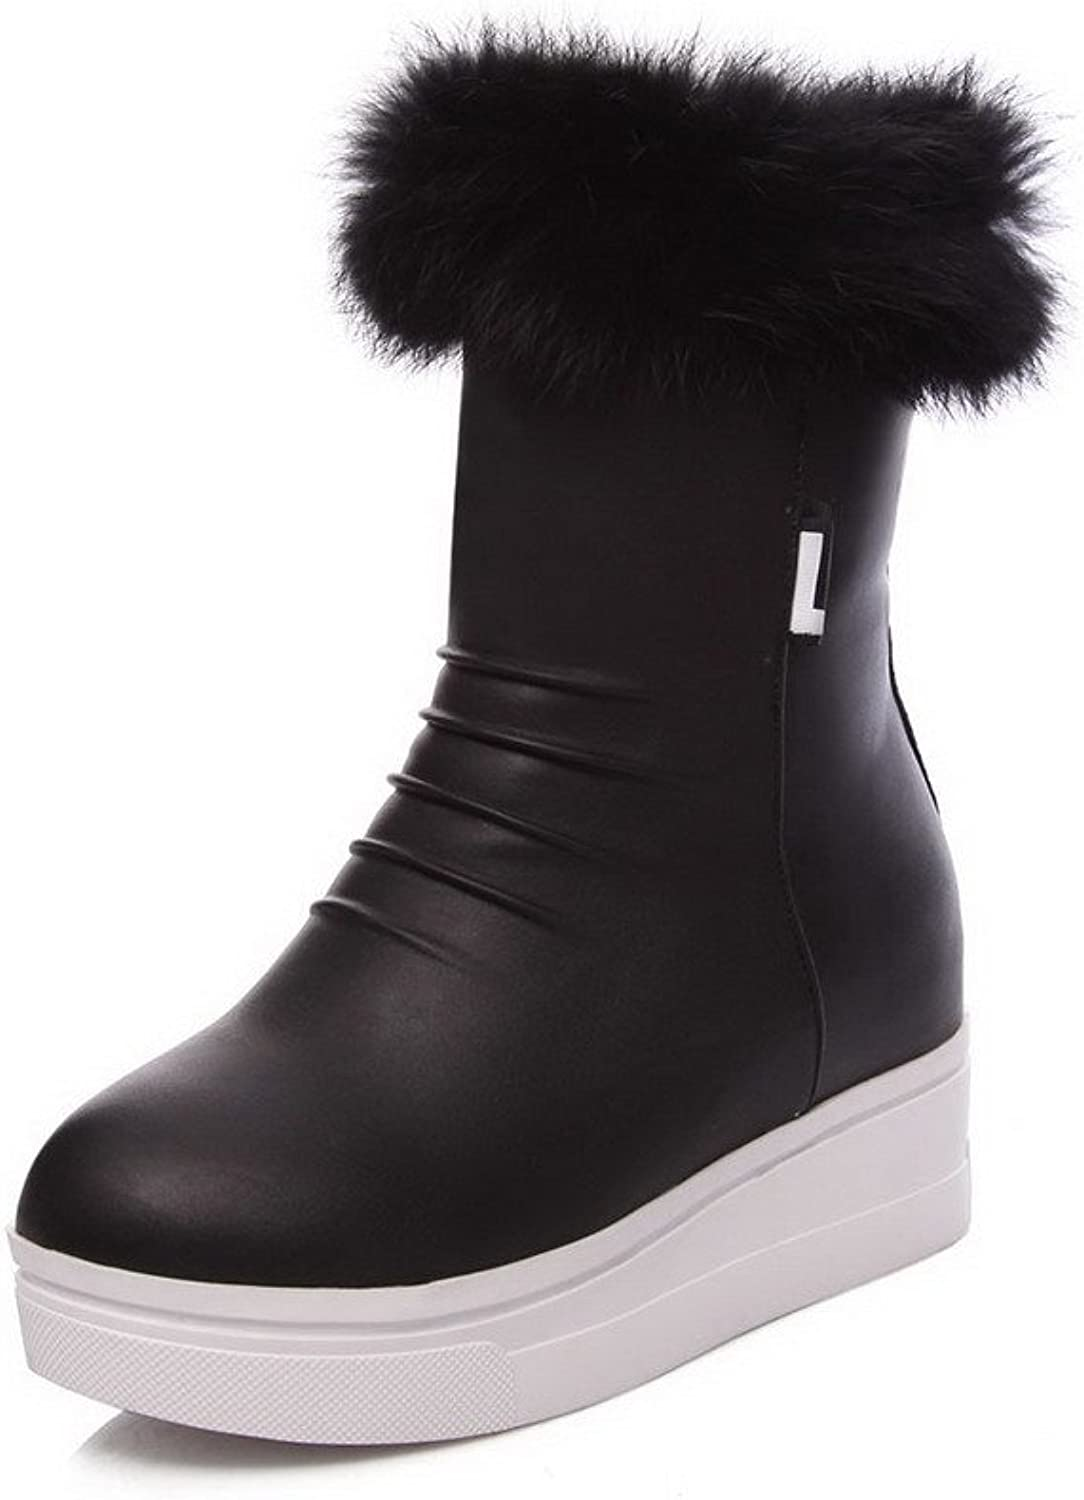 WeiPoot Women's Soft Material Zipper Round Closed Toe High-Heels Low-top Boots